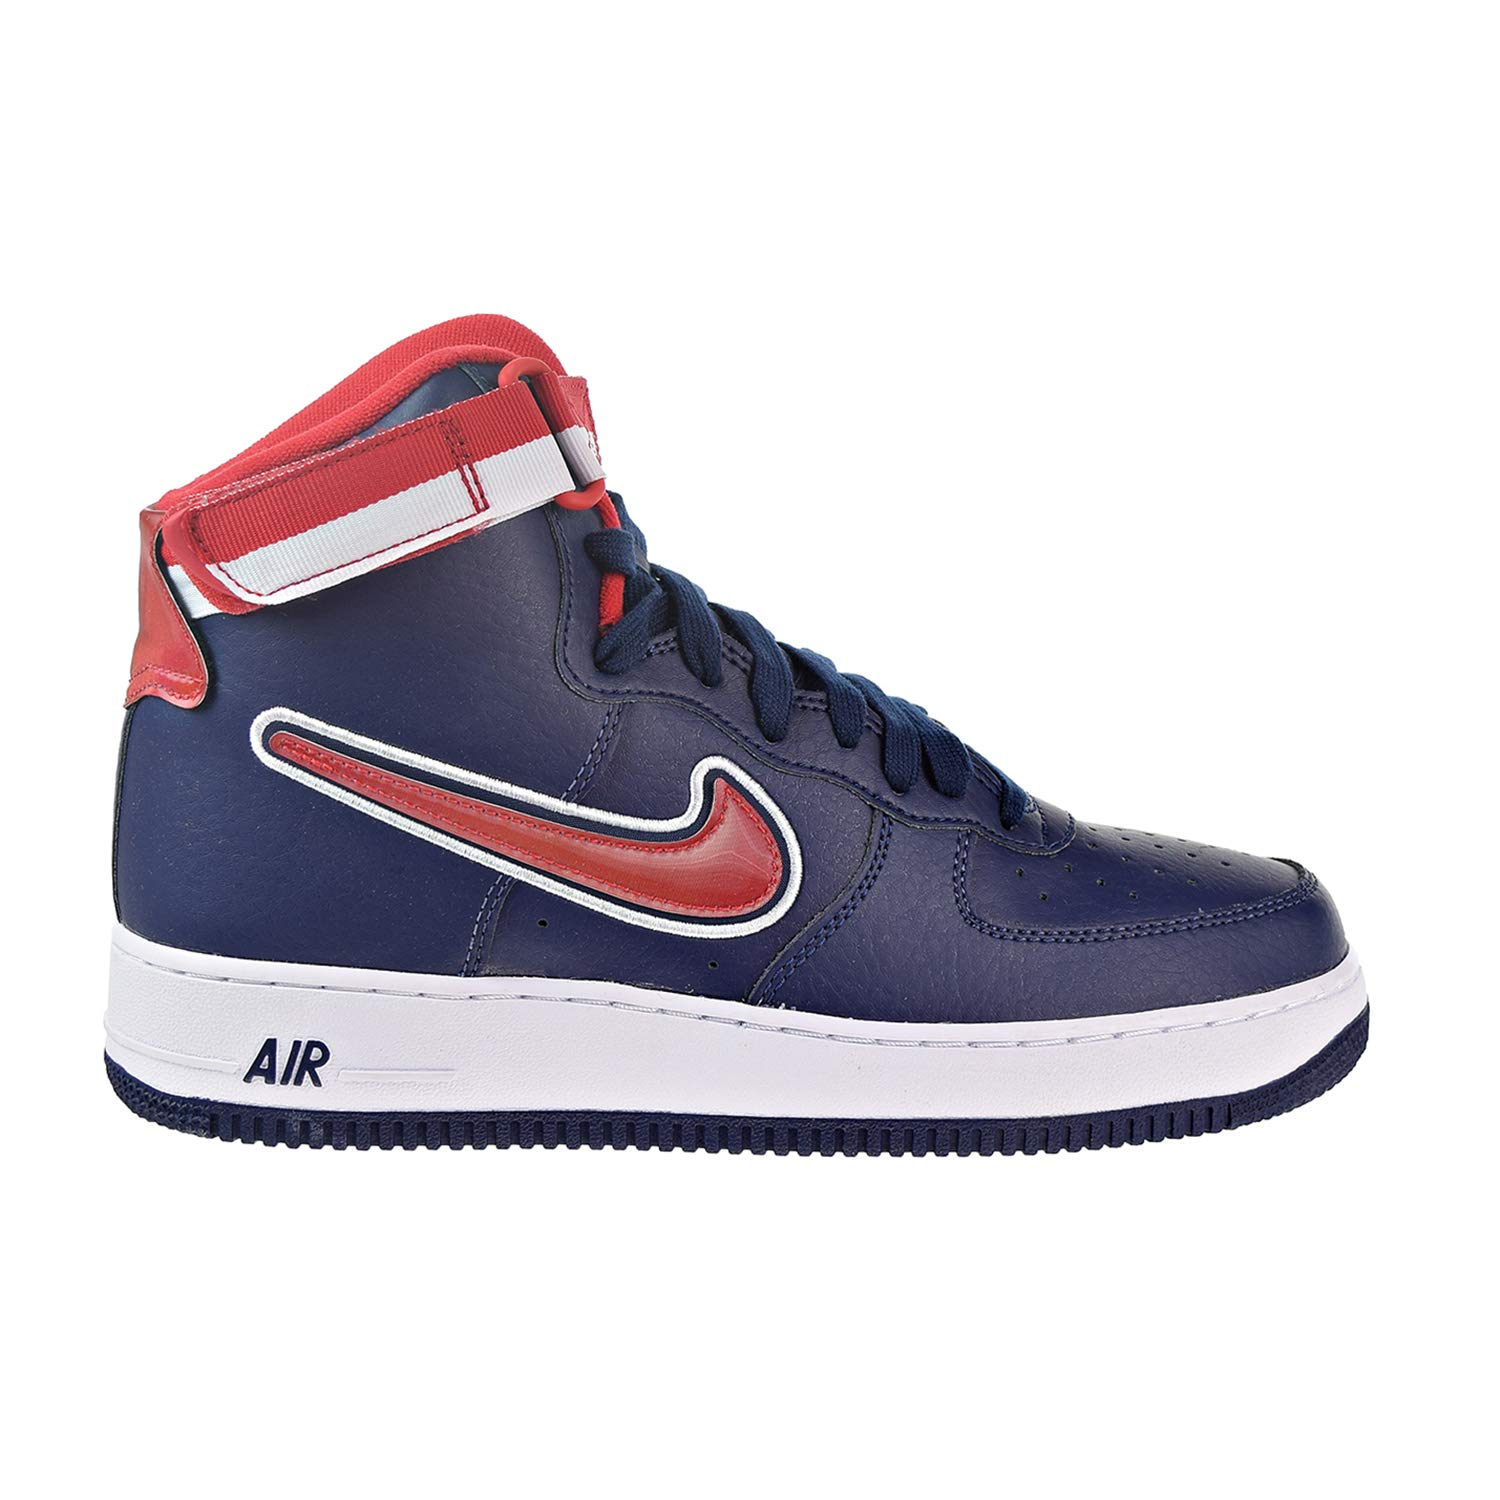 Nike Air Force 1 High '07 LV8 Sport Men's Shoes Midnight NavyWhiteRed av3938 400 (12 D(M) US)